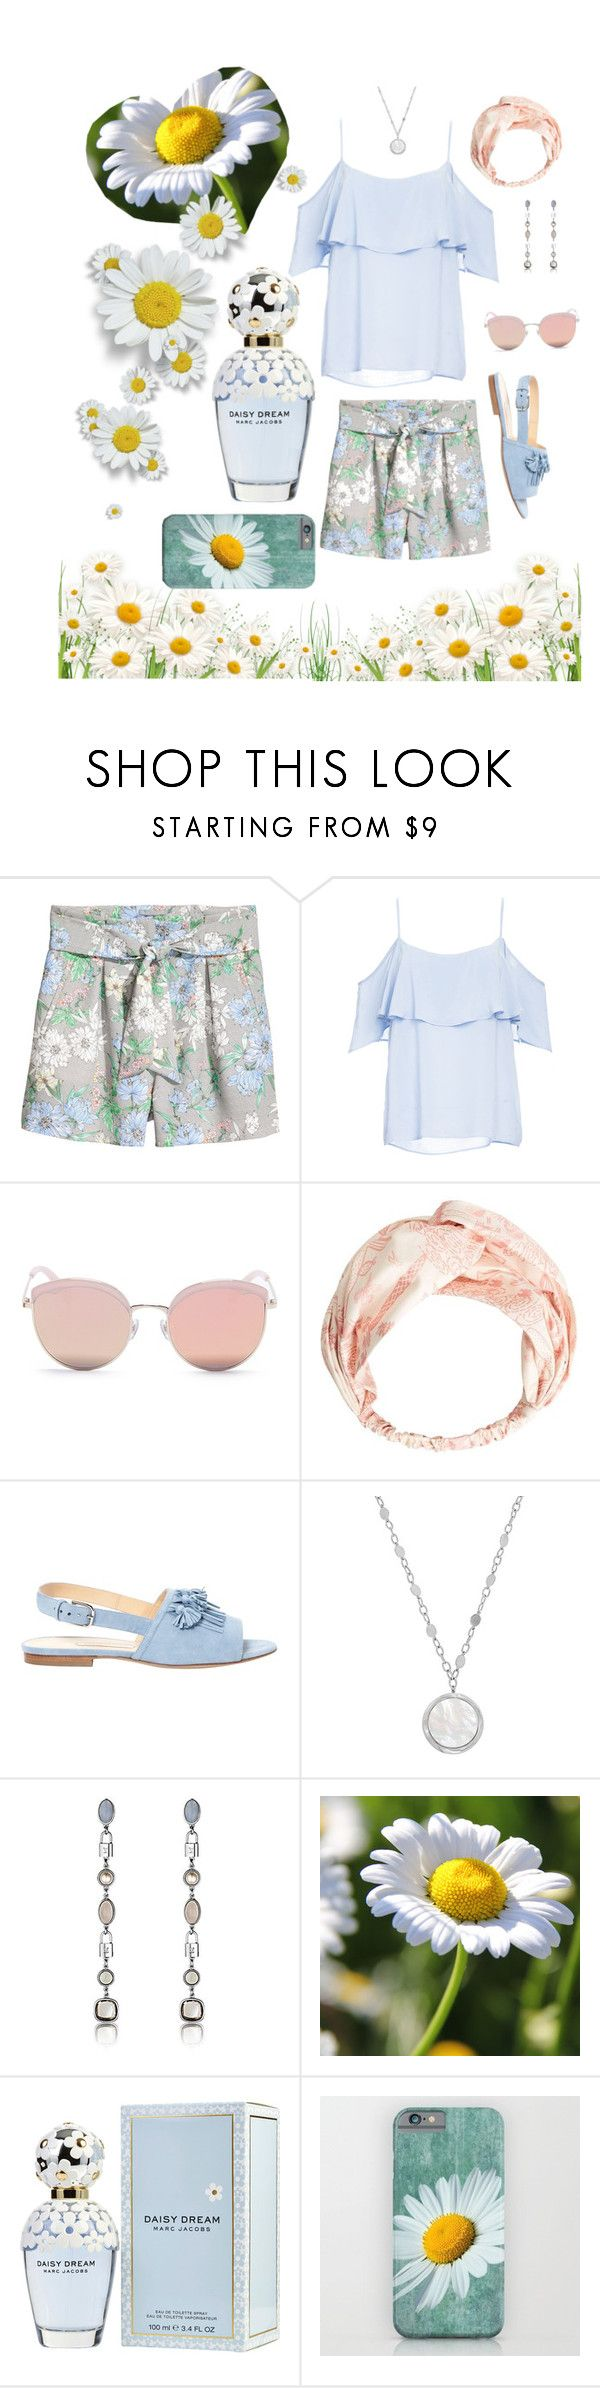 """Daisy Dream"" by mb-magic-styles ❤ liked on Polyvore featuring BB Dakota, Stephane + Christian, MANGO, Bionda Castana, Honora and Marc Jacobs"